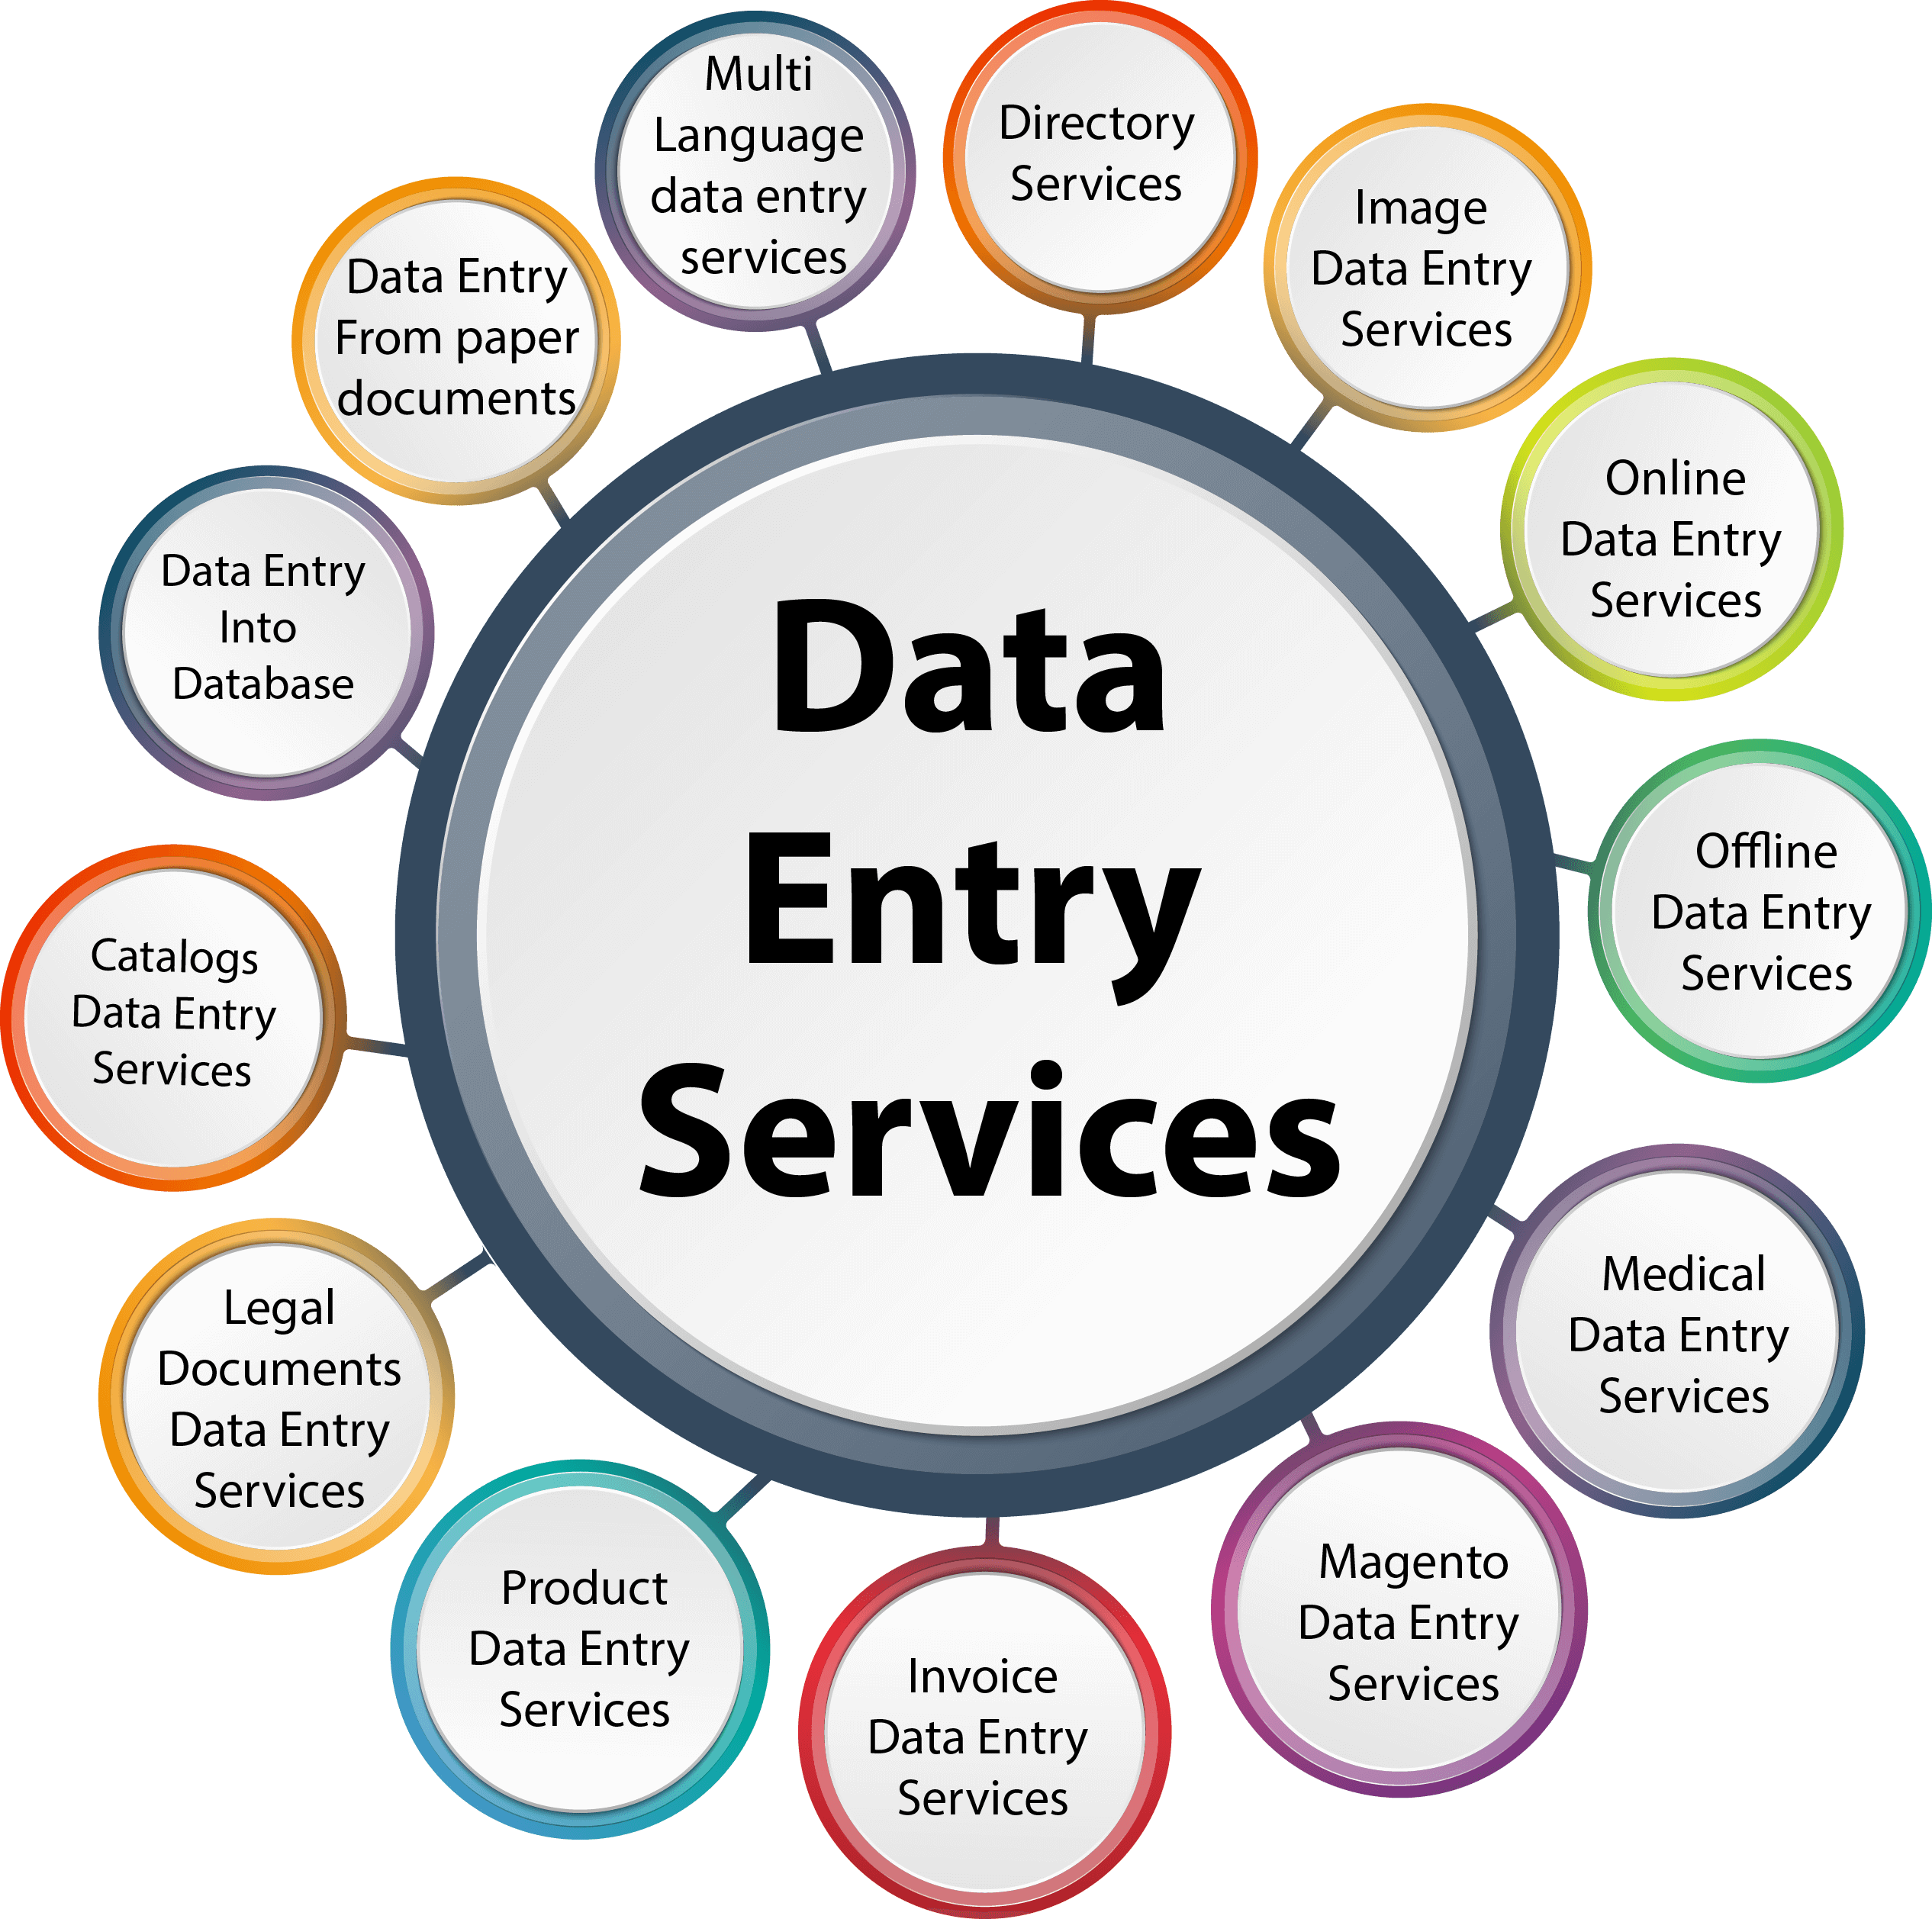 All Data Entry Services